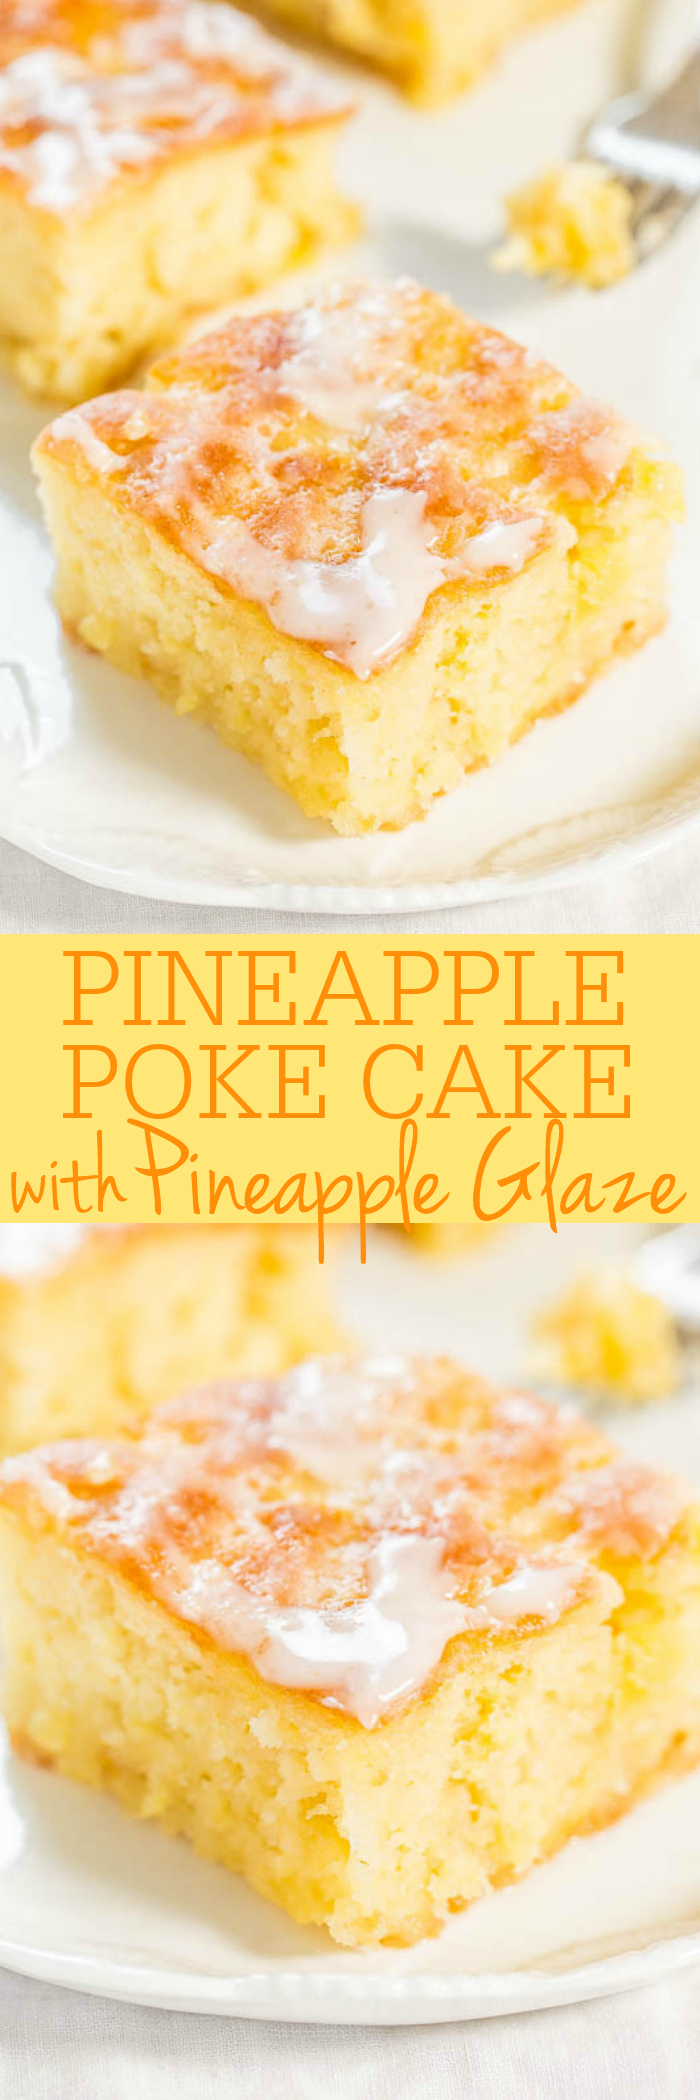 Pineapple Cake with Pineapple Icing: Quick, easy, single bowl, no mixer cake from scratch, easier than a mix! The glaze soaks every inch and you will be in the juicy pineapple heaven!